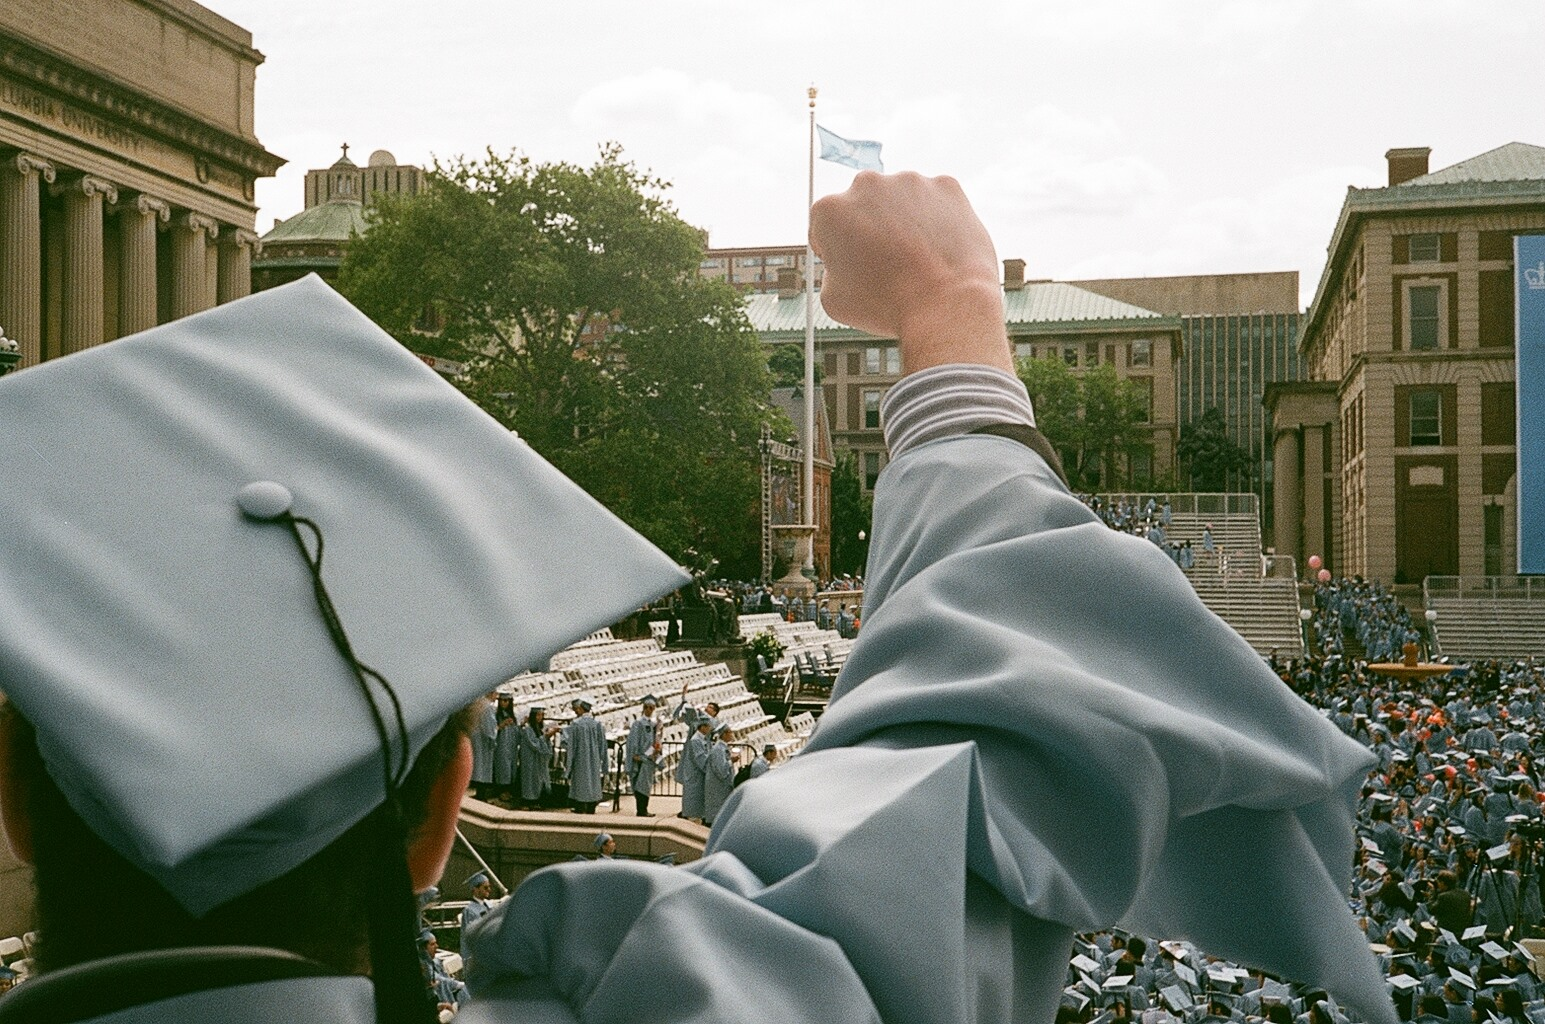 Students at Columbia University's graduation in 2015.